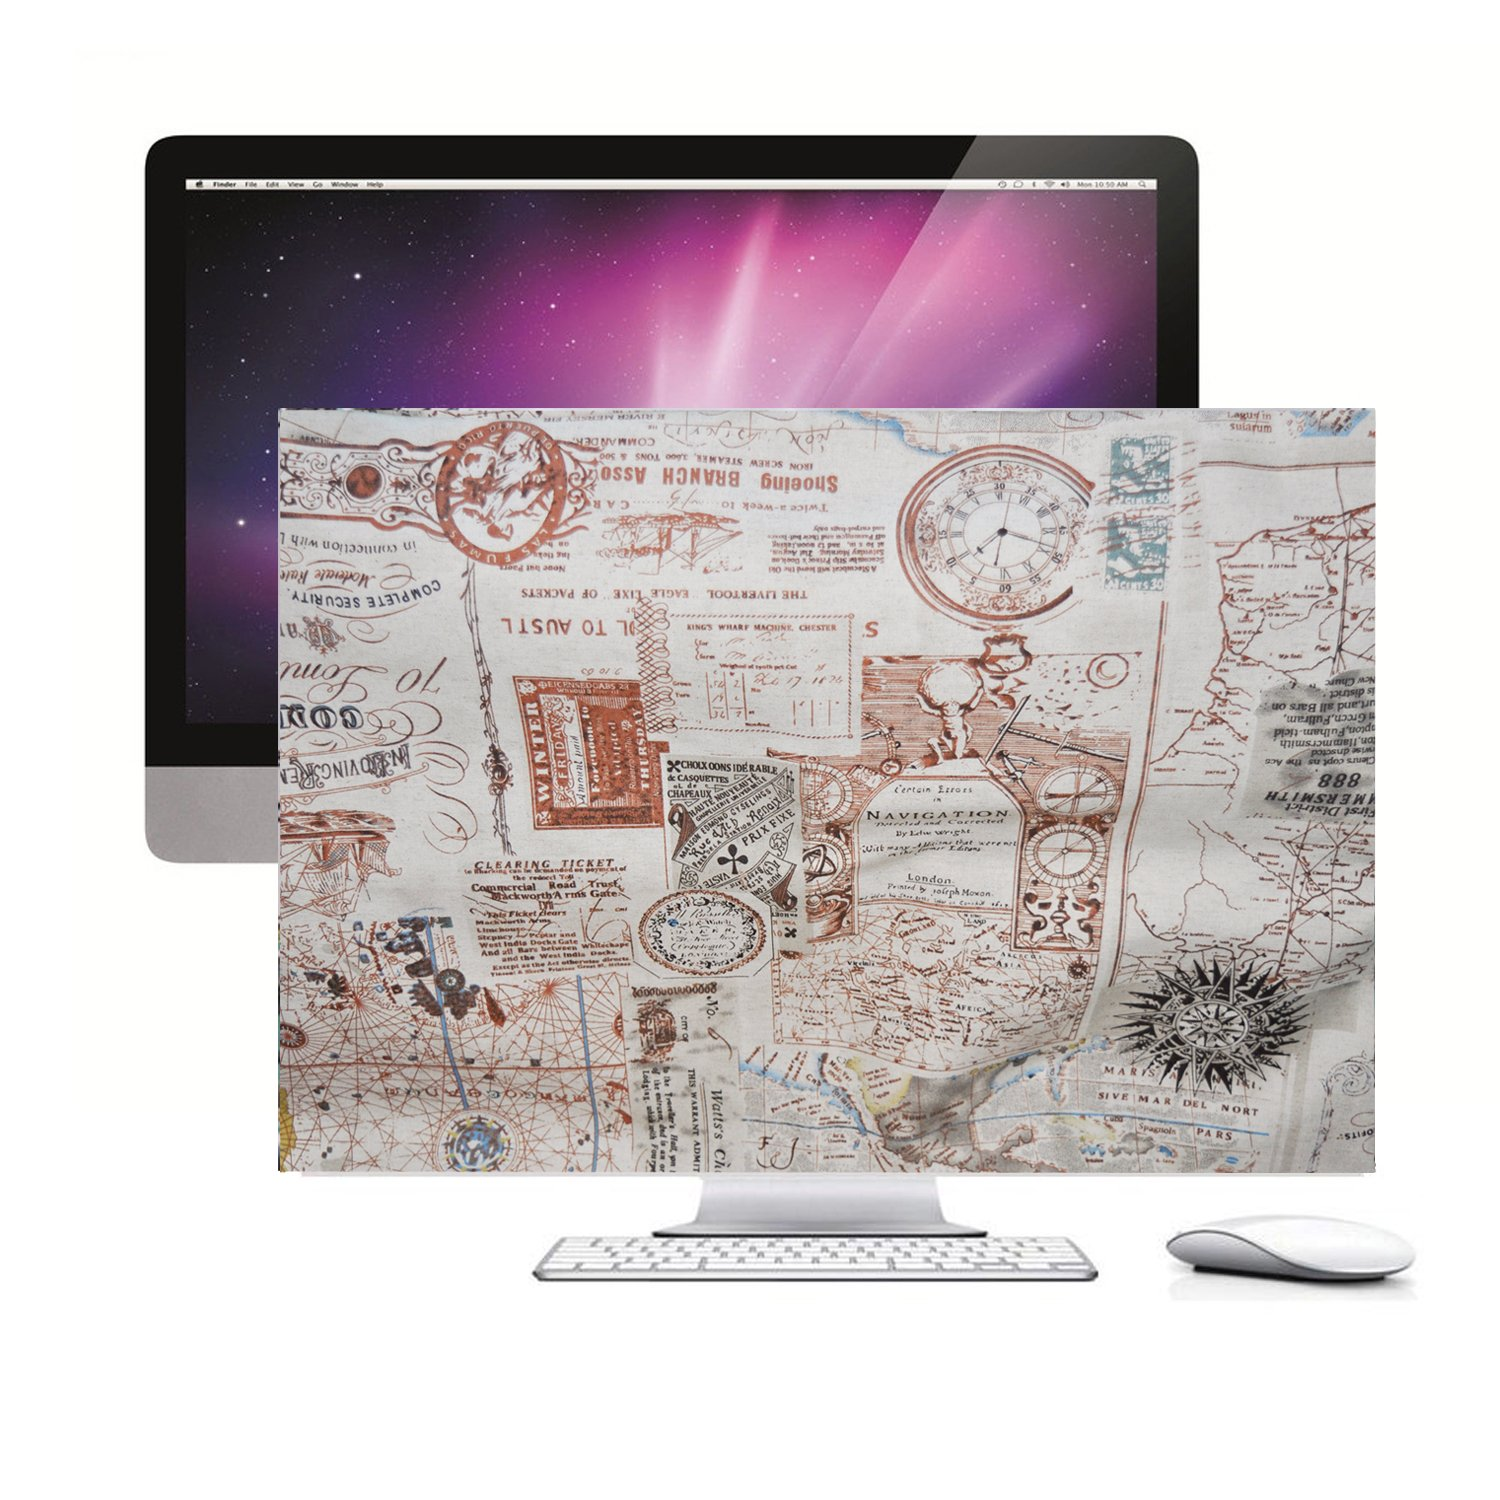 Screen Monitor Protector Guard Travel around the world,HAND MADE Padded velvet Dust Cover for Apple iMac 27-inch